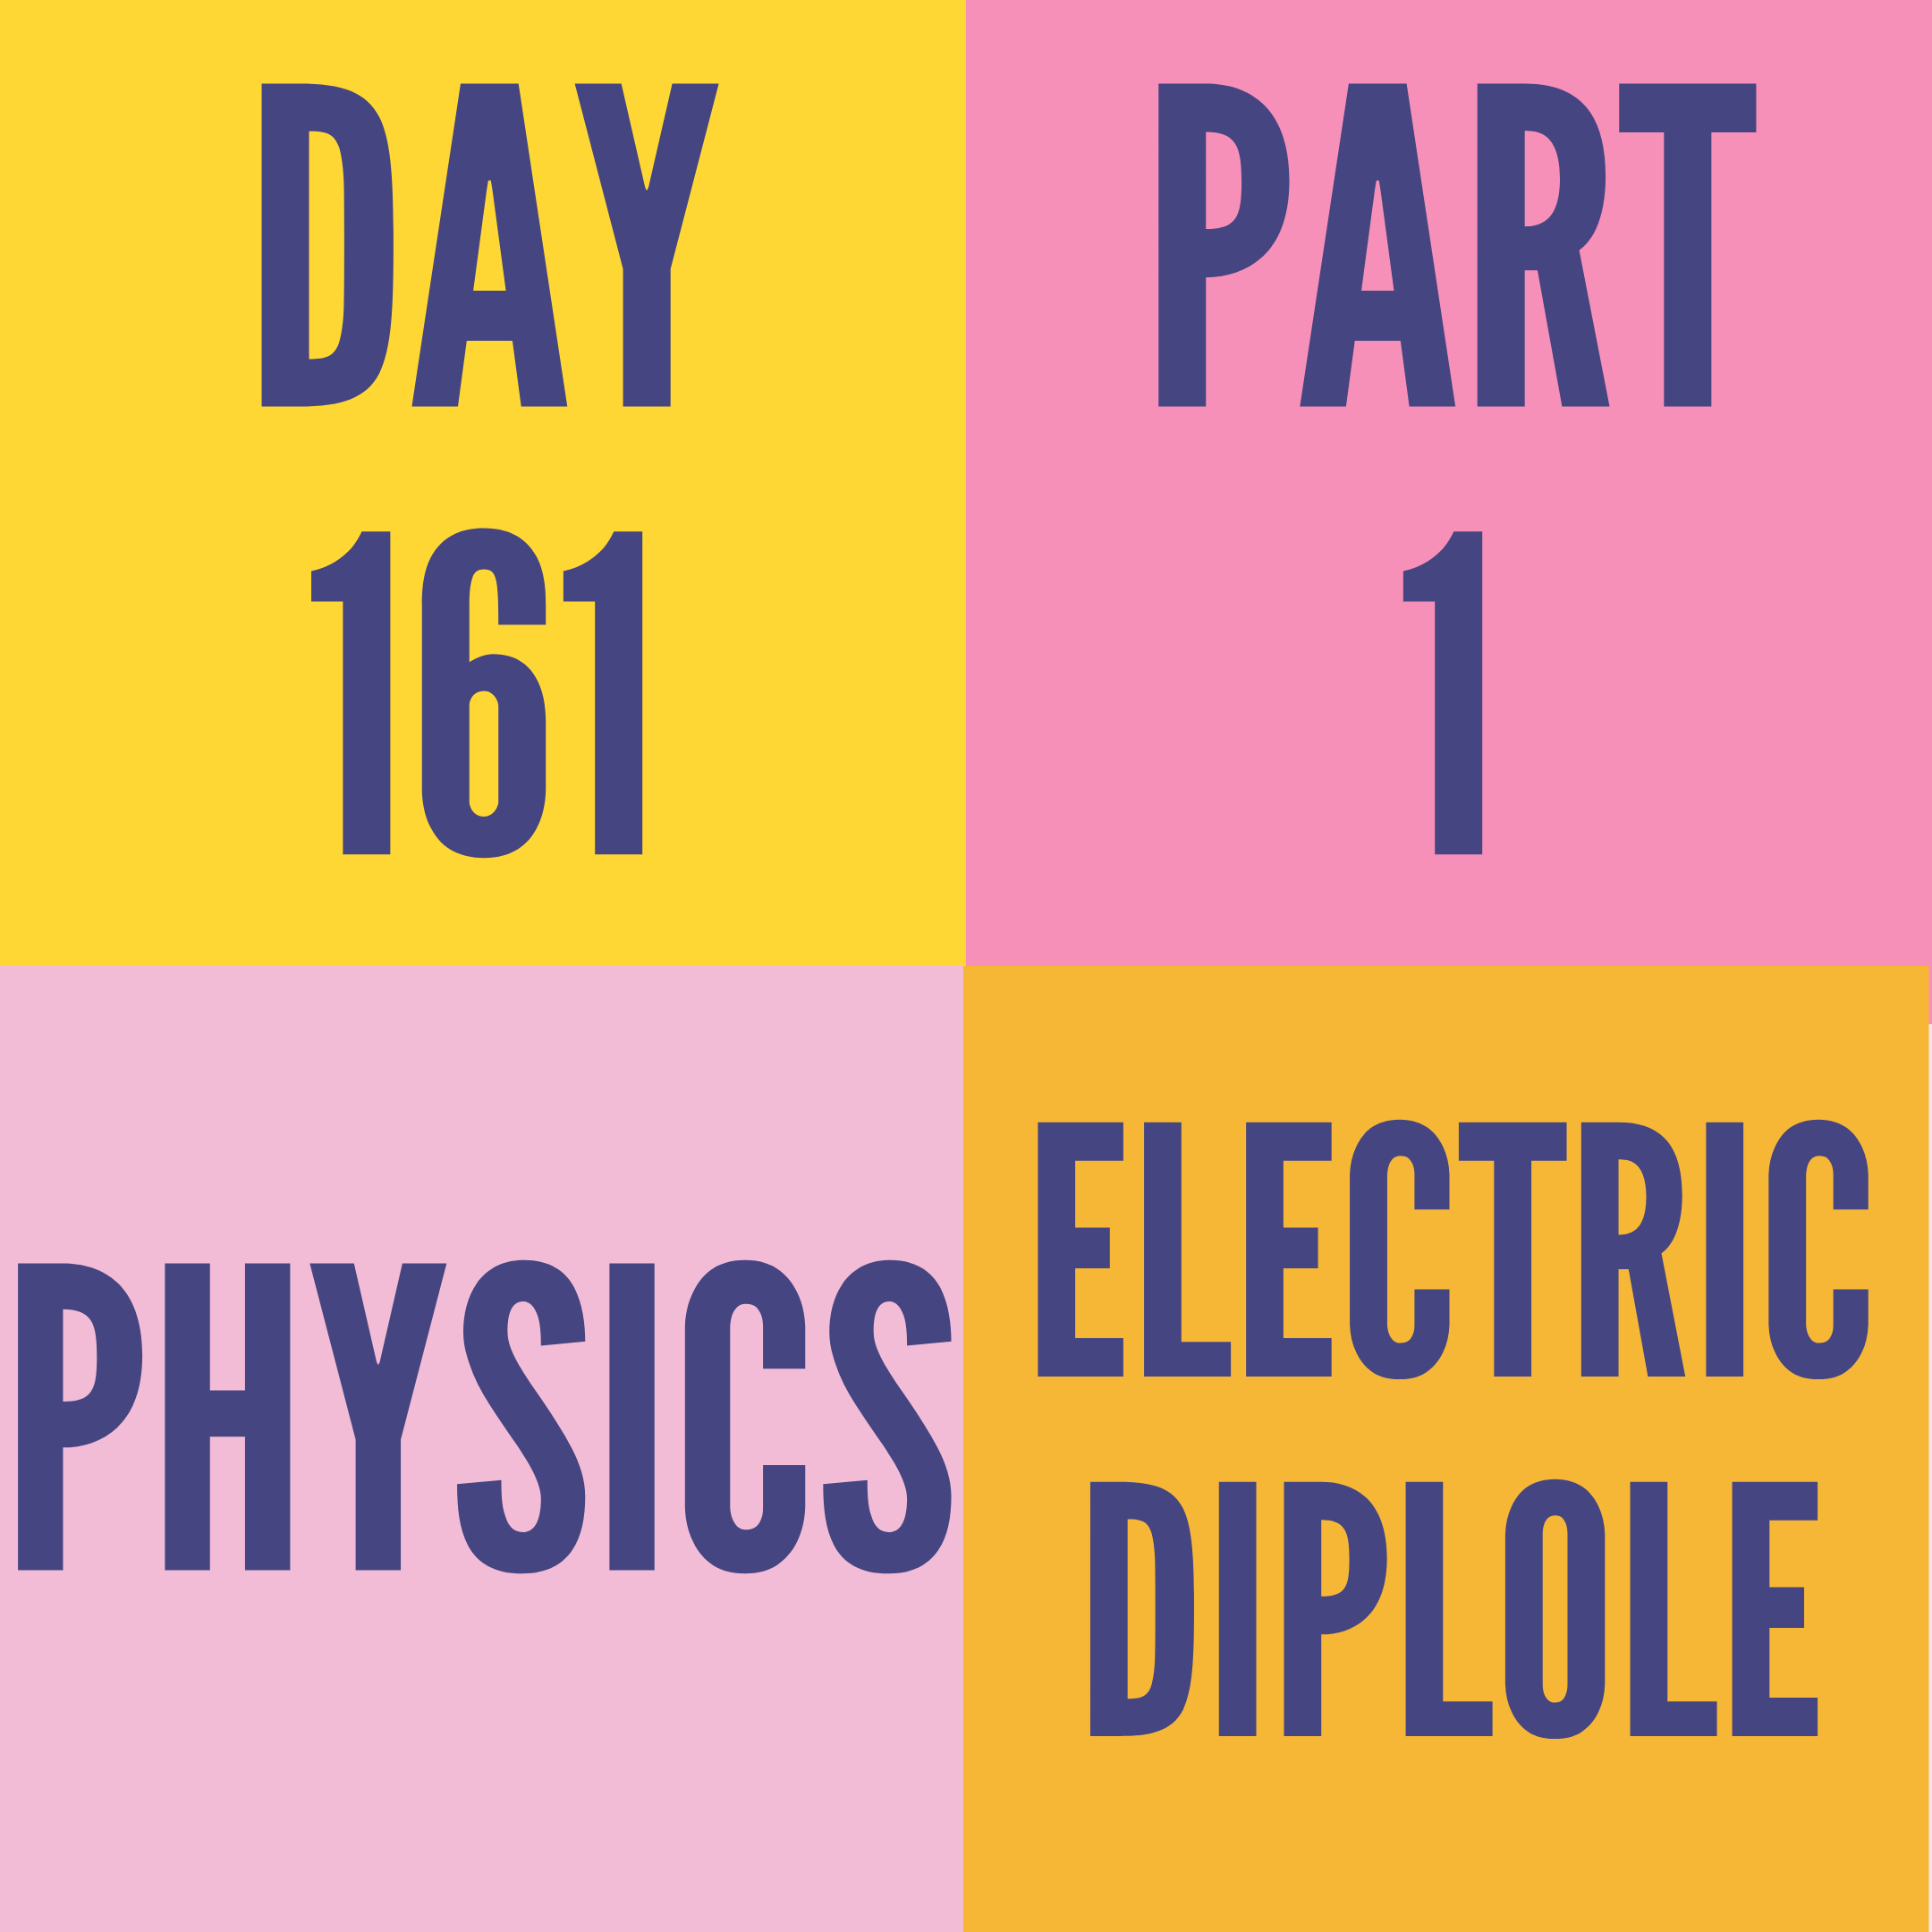 DAY-161 PART-1 ELECTRIC DIPOLE